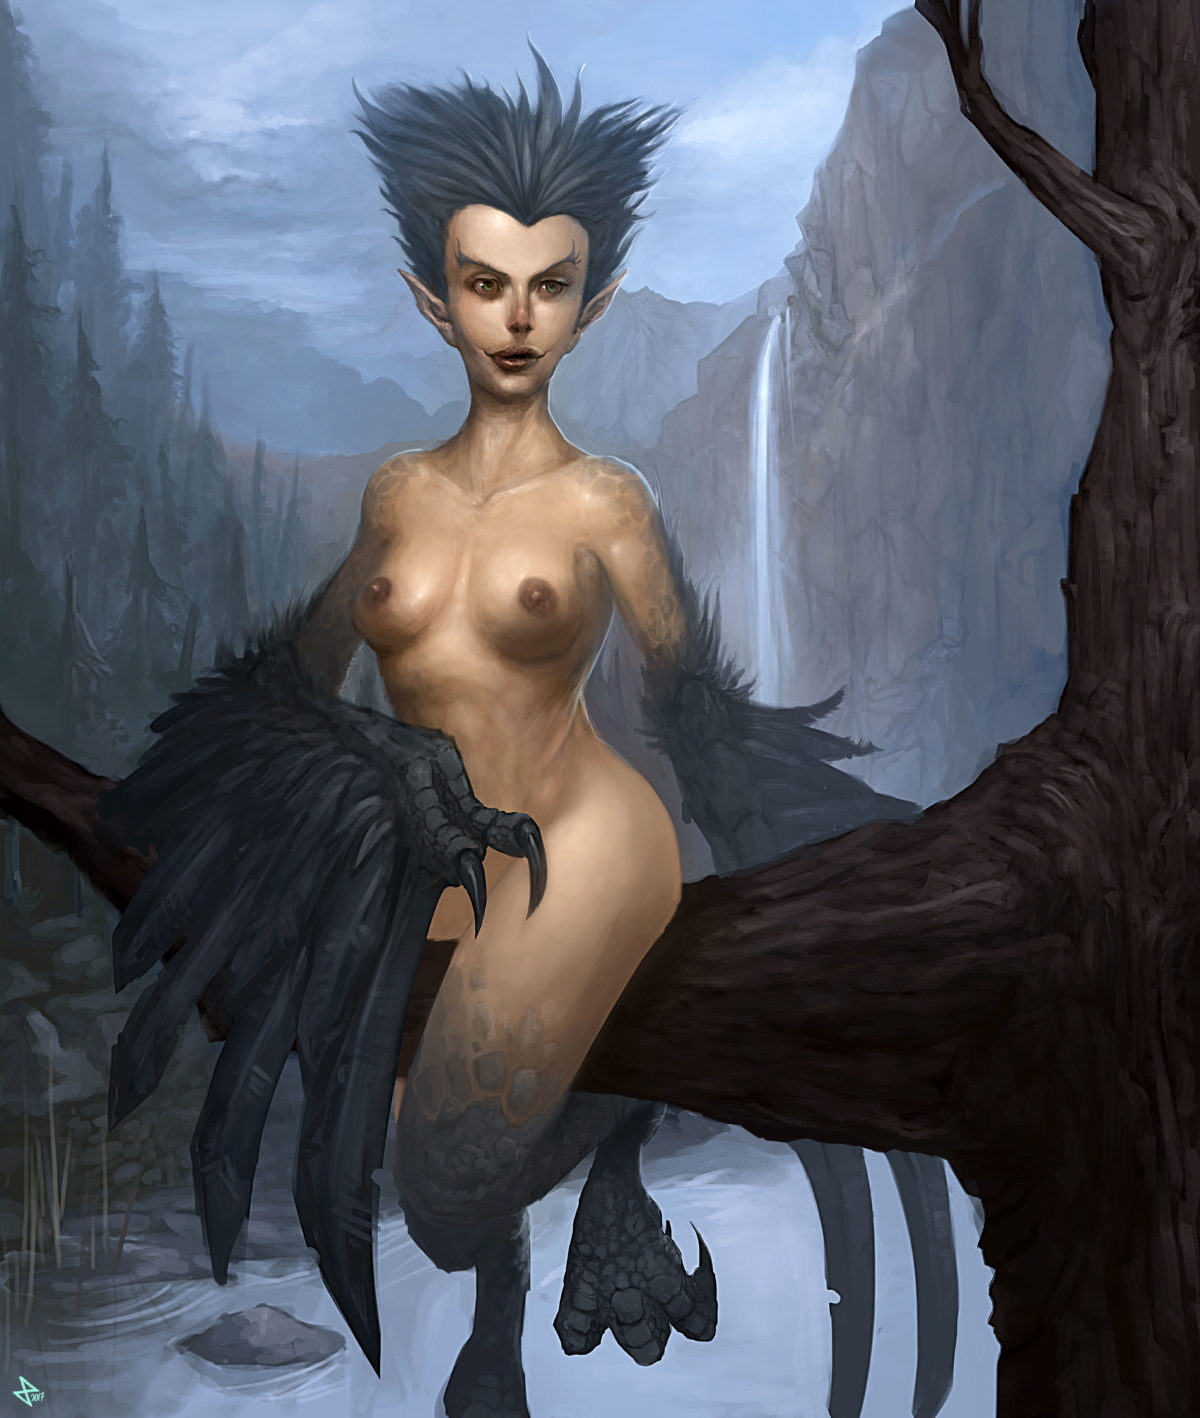 A Harpy on a branch in the mountain forrest